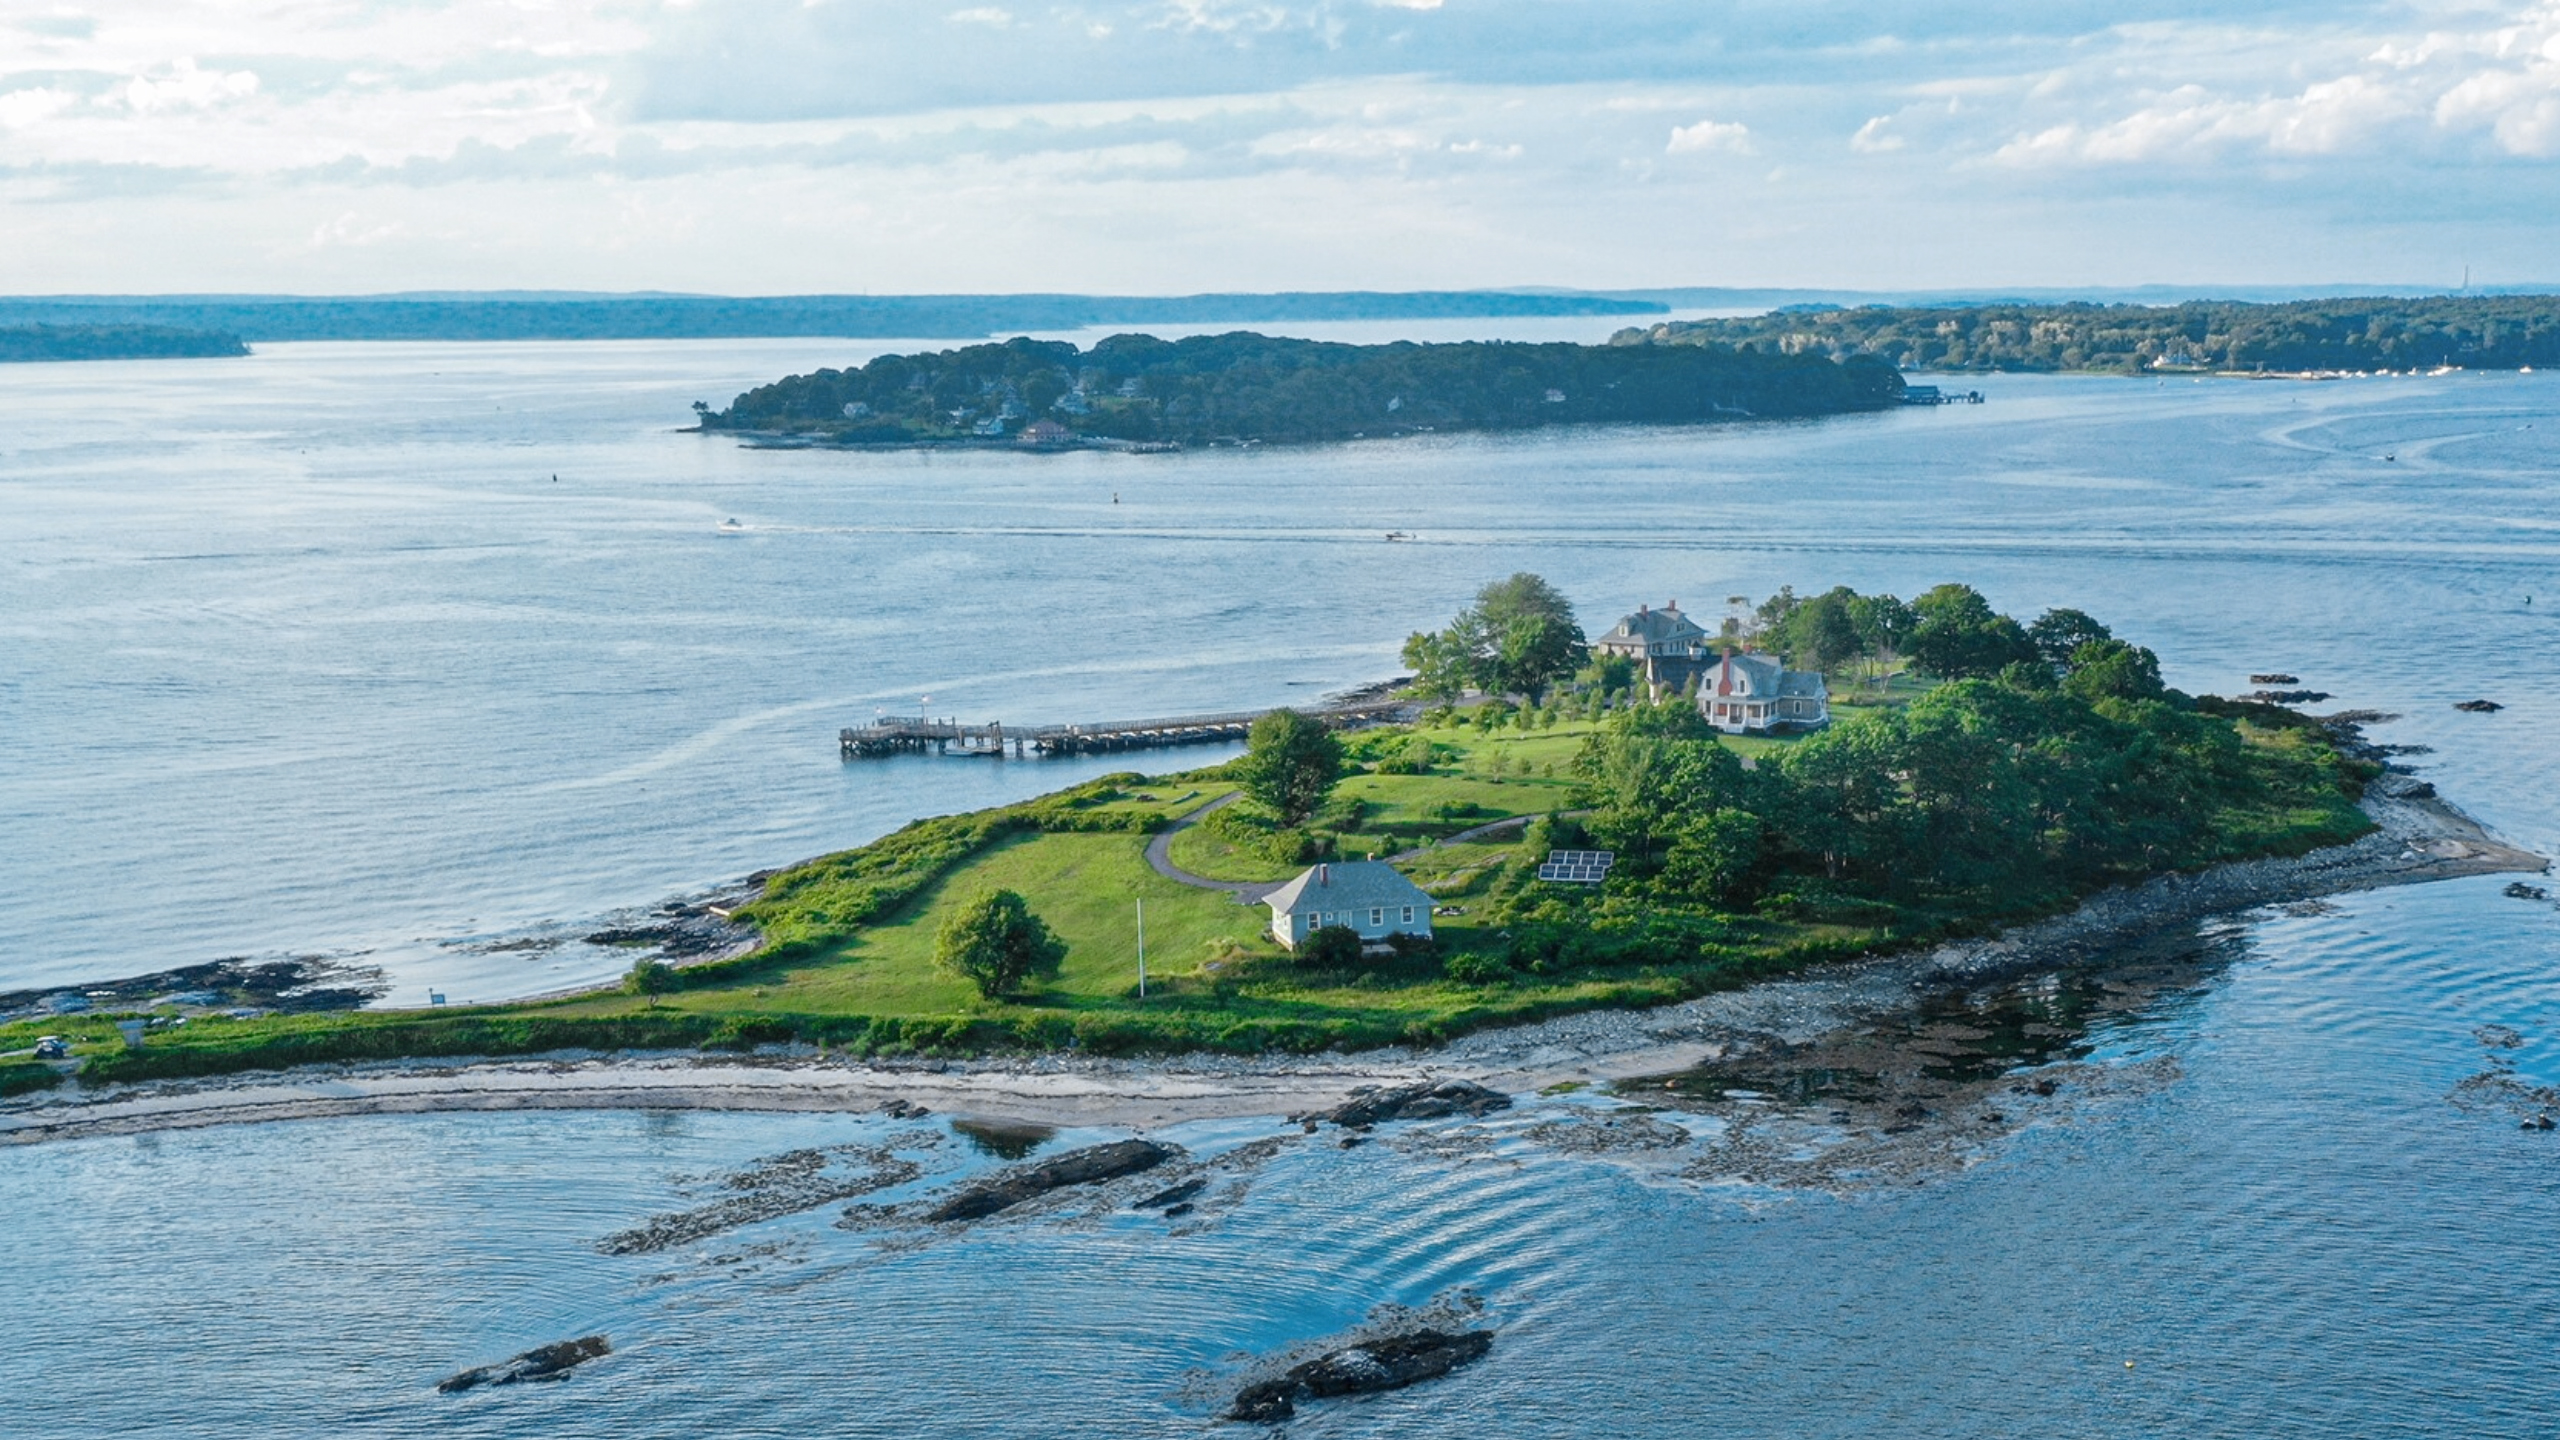 House Island aerial view with Sunshine Cottage and Sea Glass Beach in the foreground and the island's splendid greenery and tress surrounded by Casco Bay